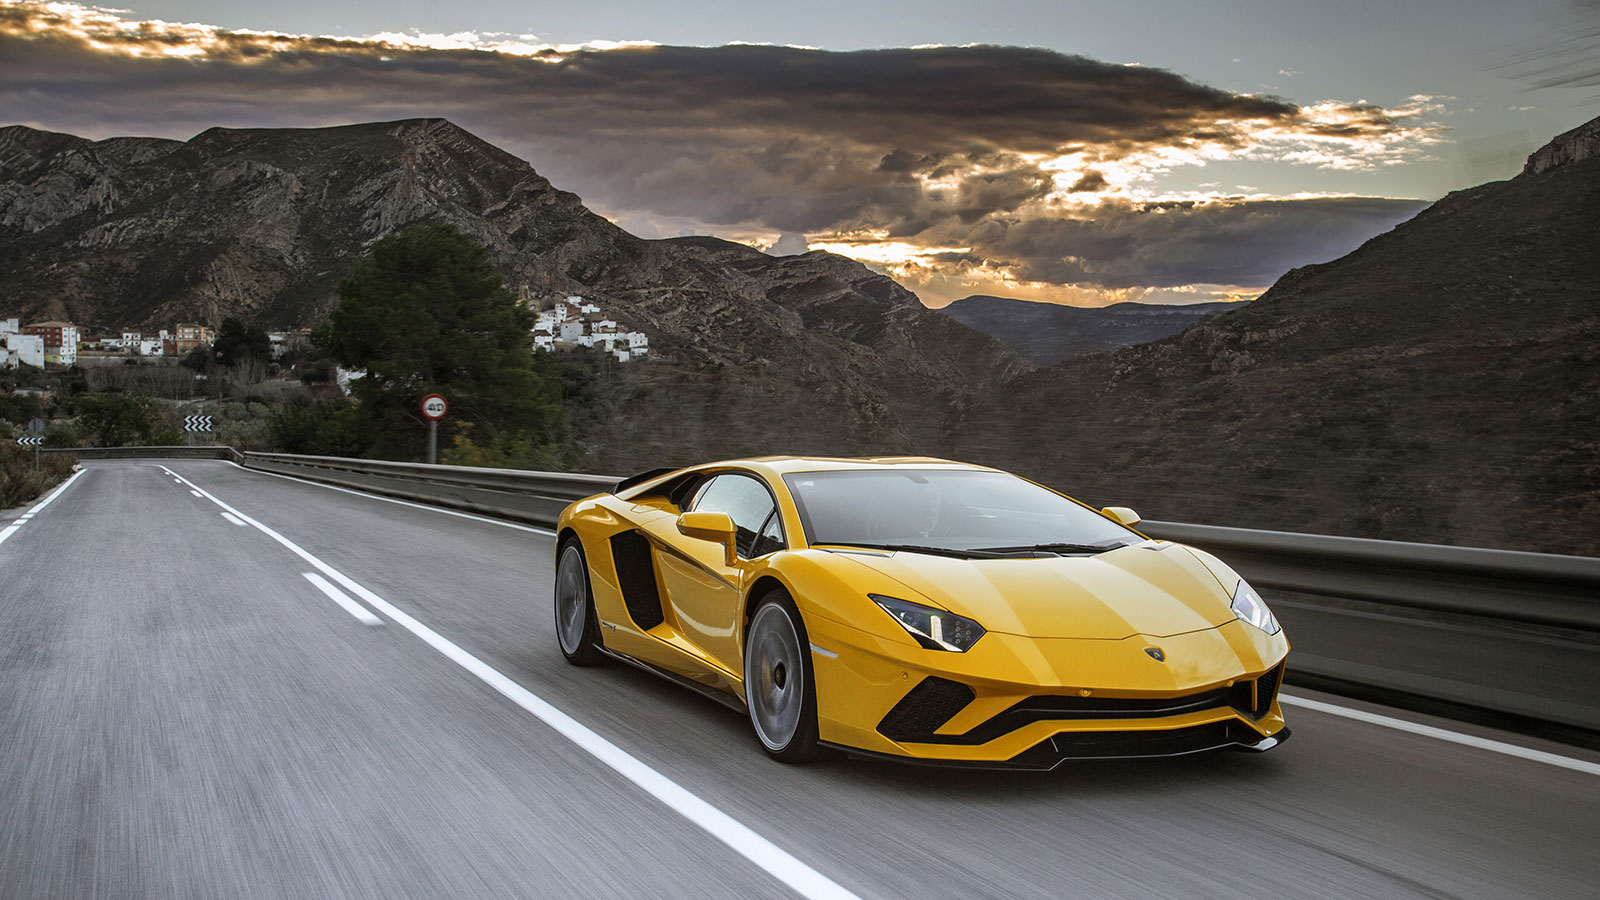 Lamborghini Aventador S Coupe - The Icon Reborn image 30